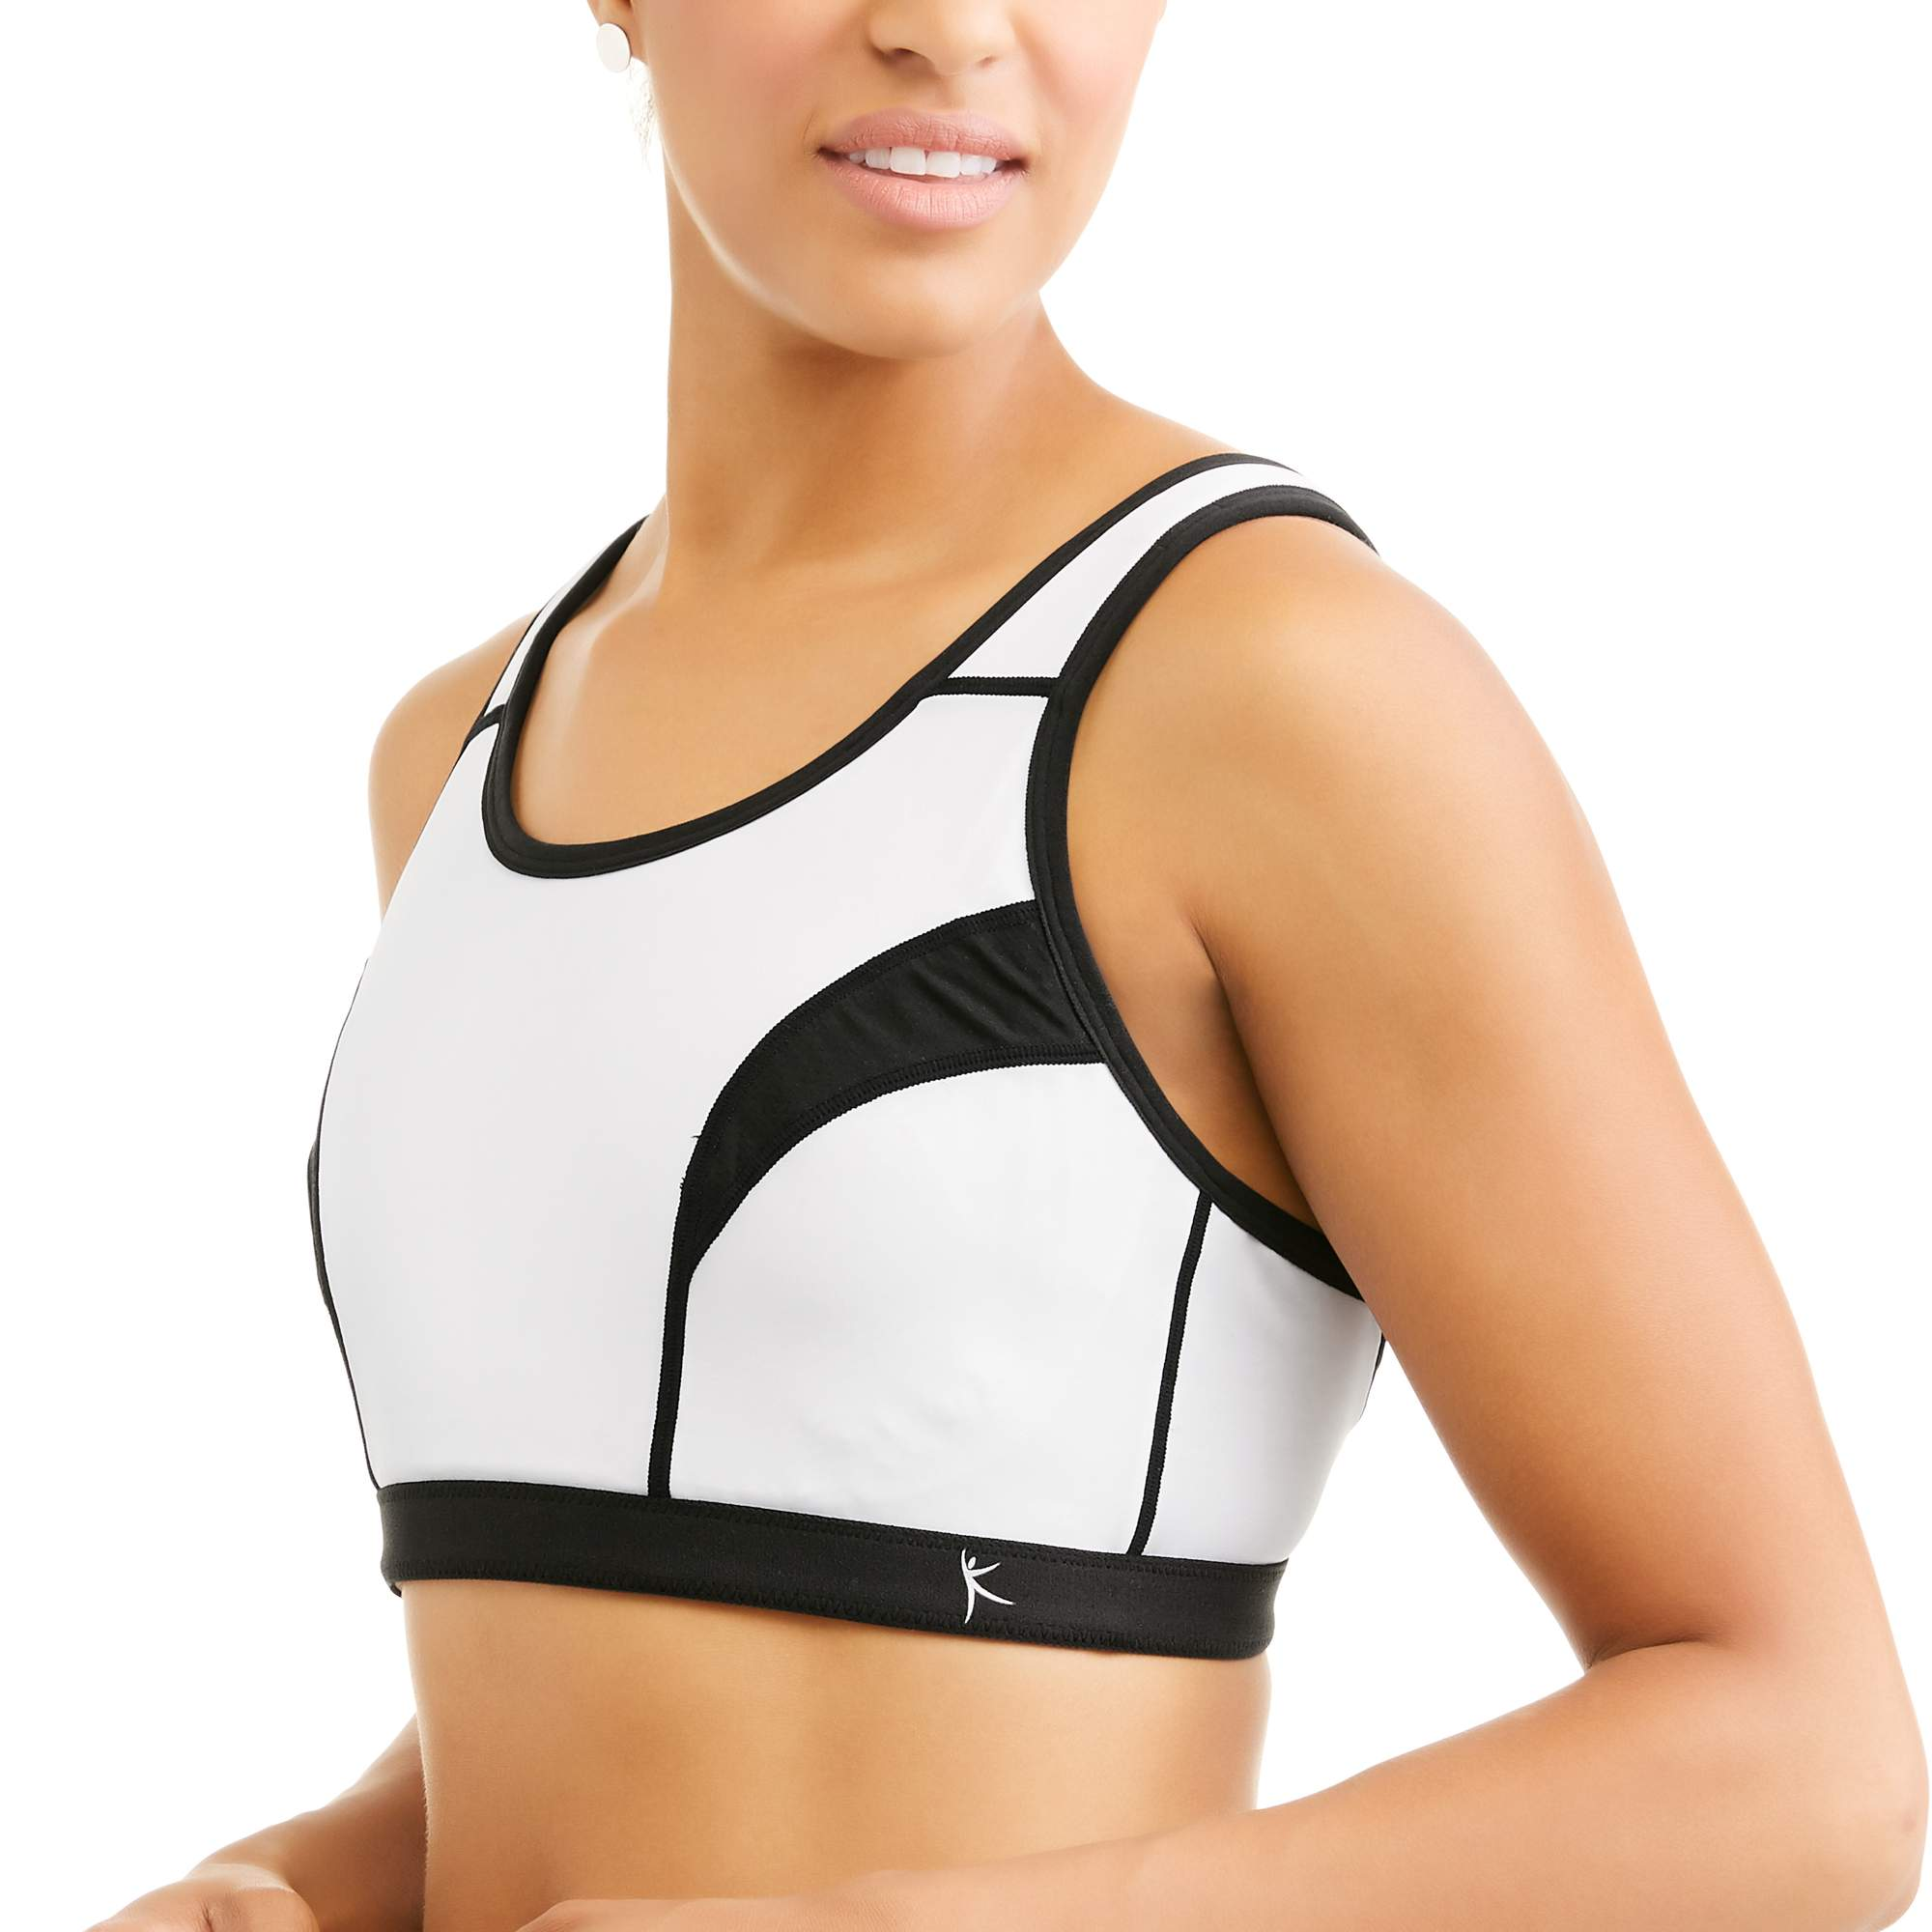 c8913bf49a Danskin Now - Secret Support Sports Bra - Walmart.com